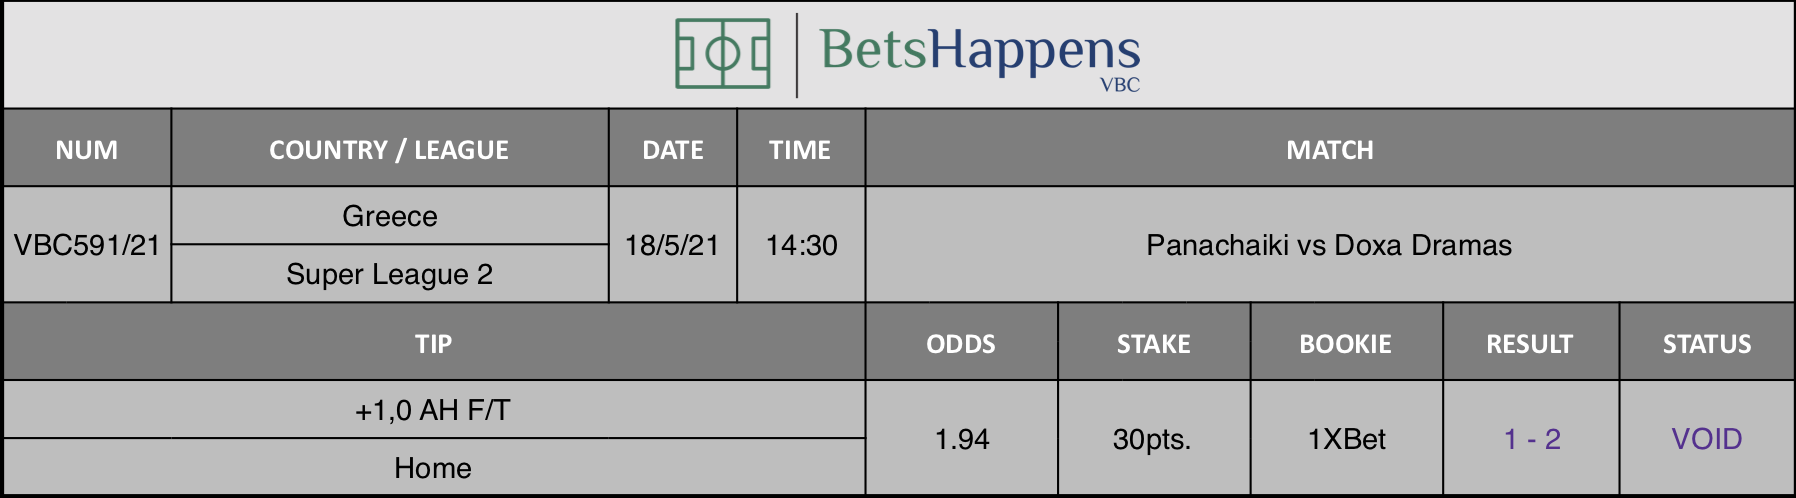 Results of our tip for the Panachaiki vs Doxa Dramas match where +1,0 AH F/T Home is recommended.